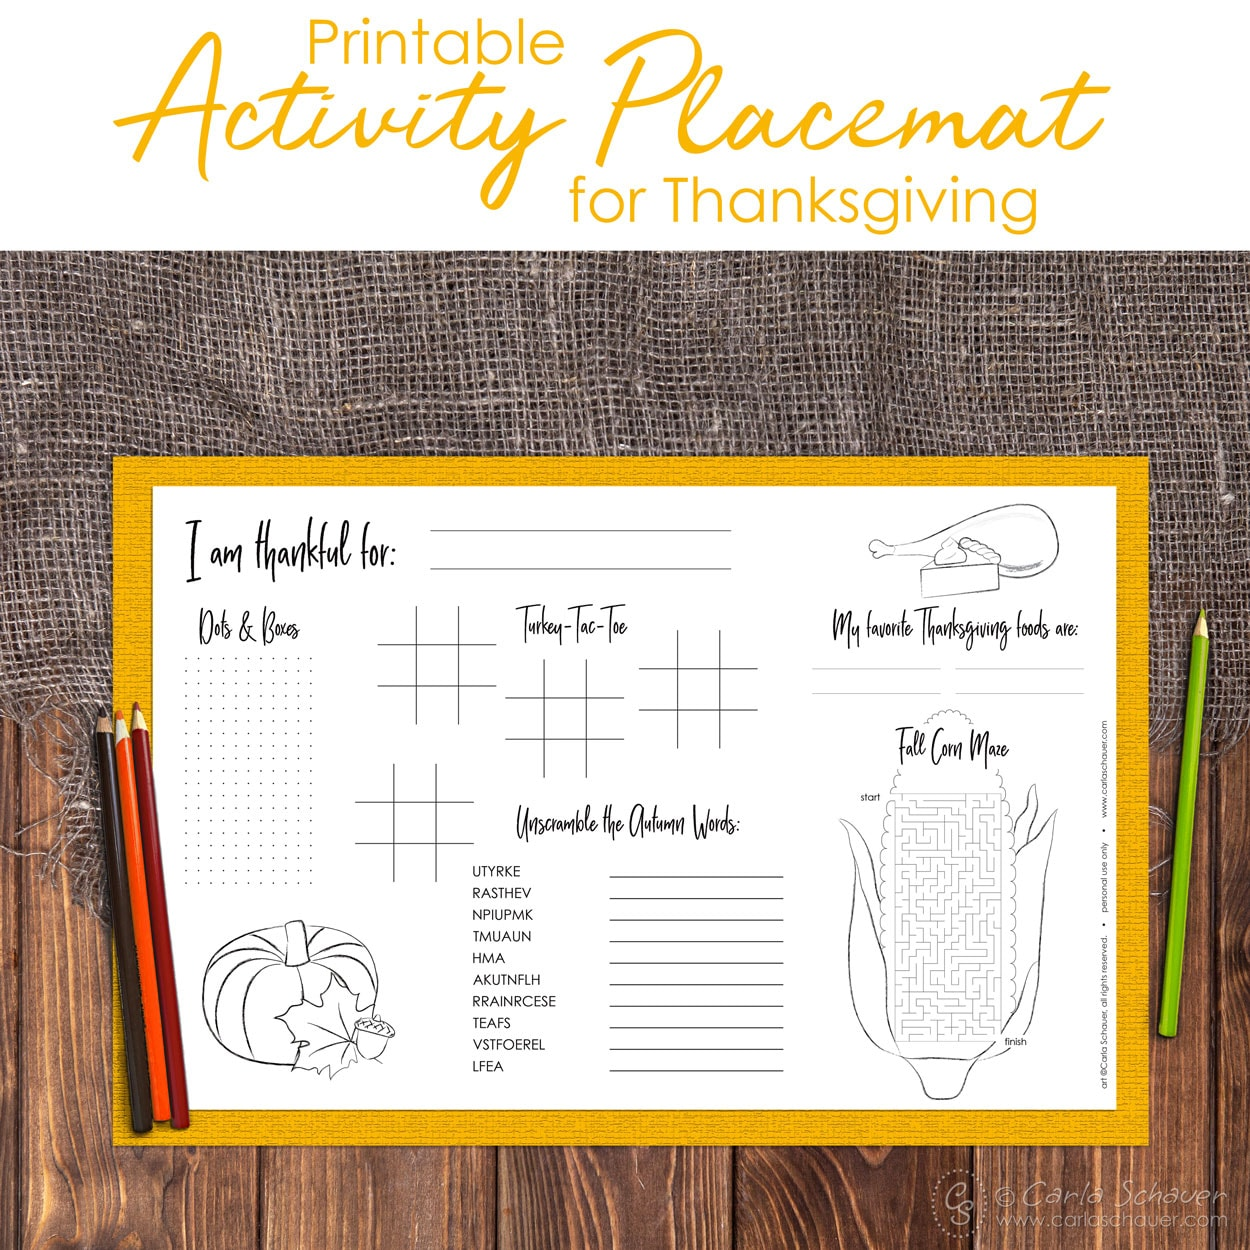 Thanksgiving activity placemat with yellow border and colored pencils on wood table. Includes text for pinning.